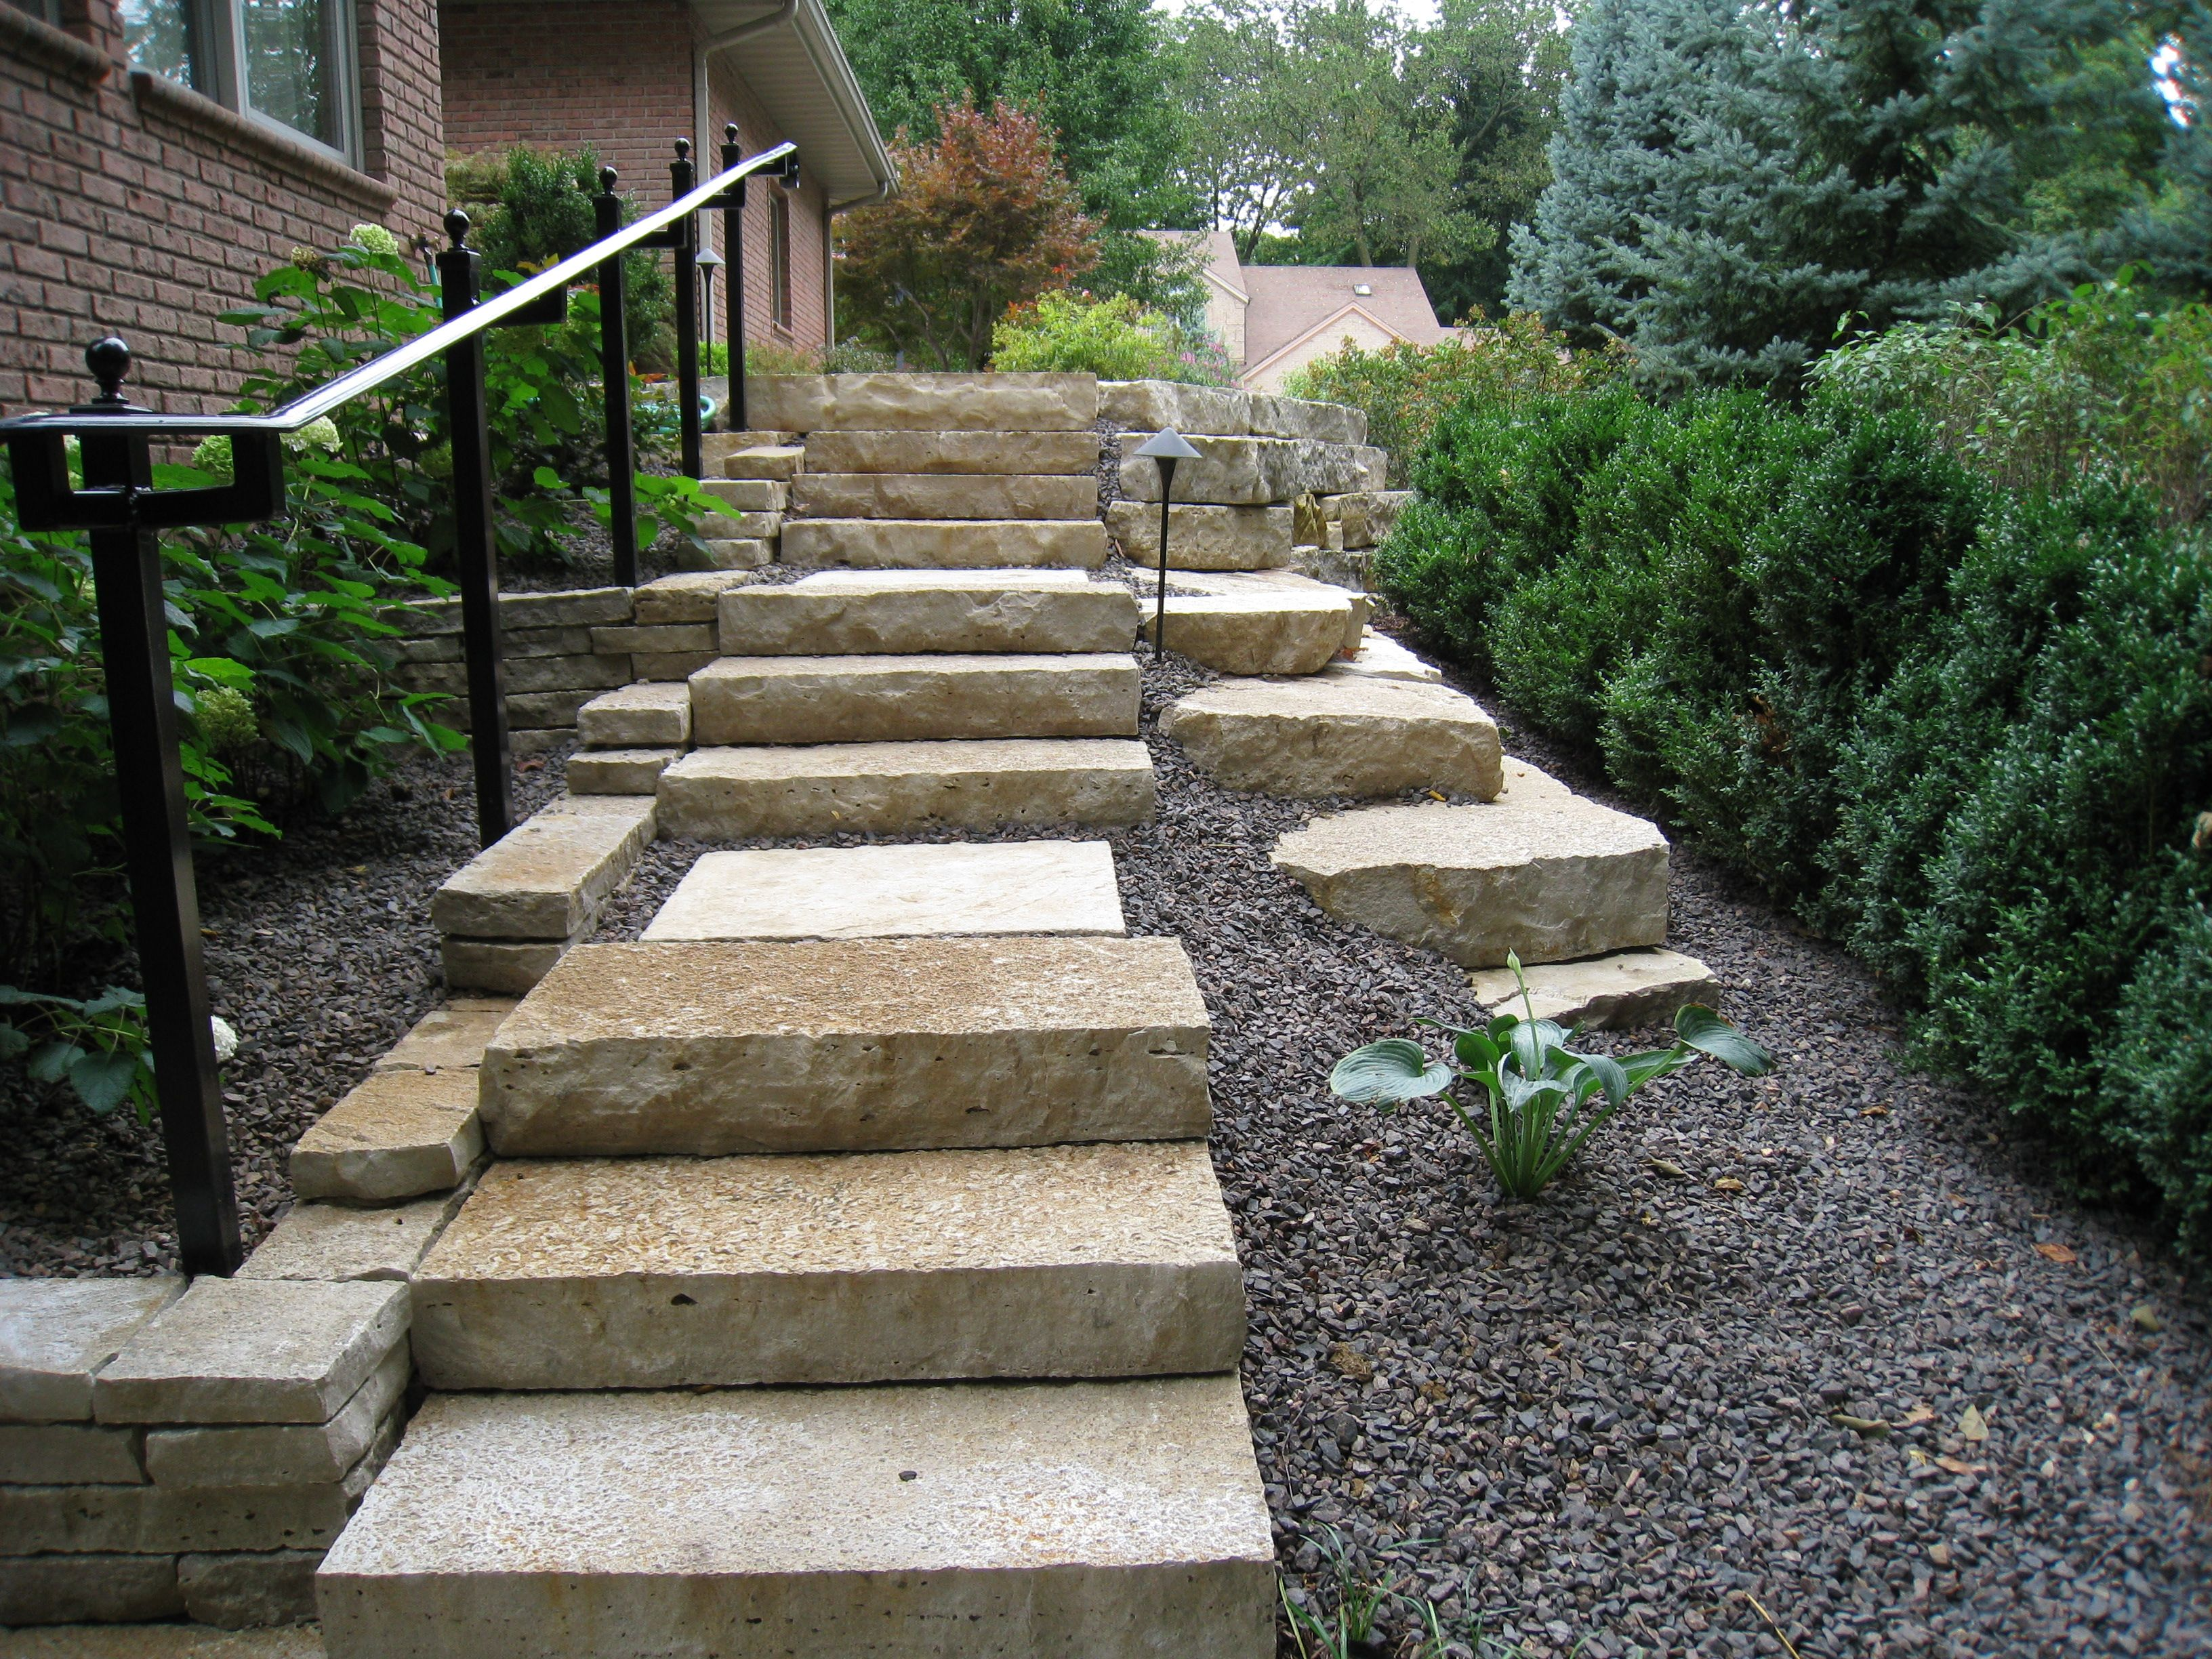 Hand Rail Stone Steps Stepping Stones Outdoor Decor Steps   Outdoor Railings For Stone Steps   Screen Porch   Modern Outdoor   Backyard   Stone Patio   Fancy